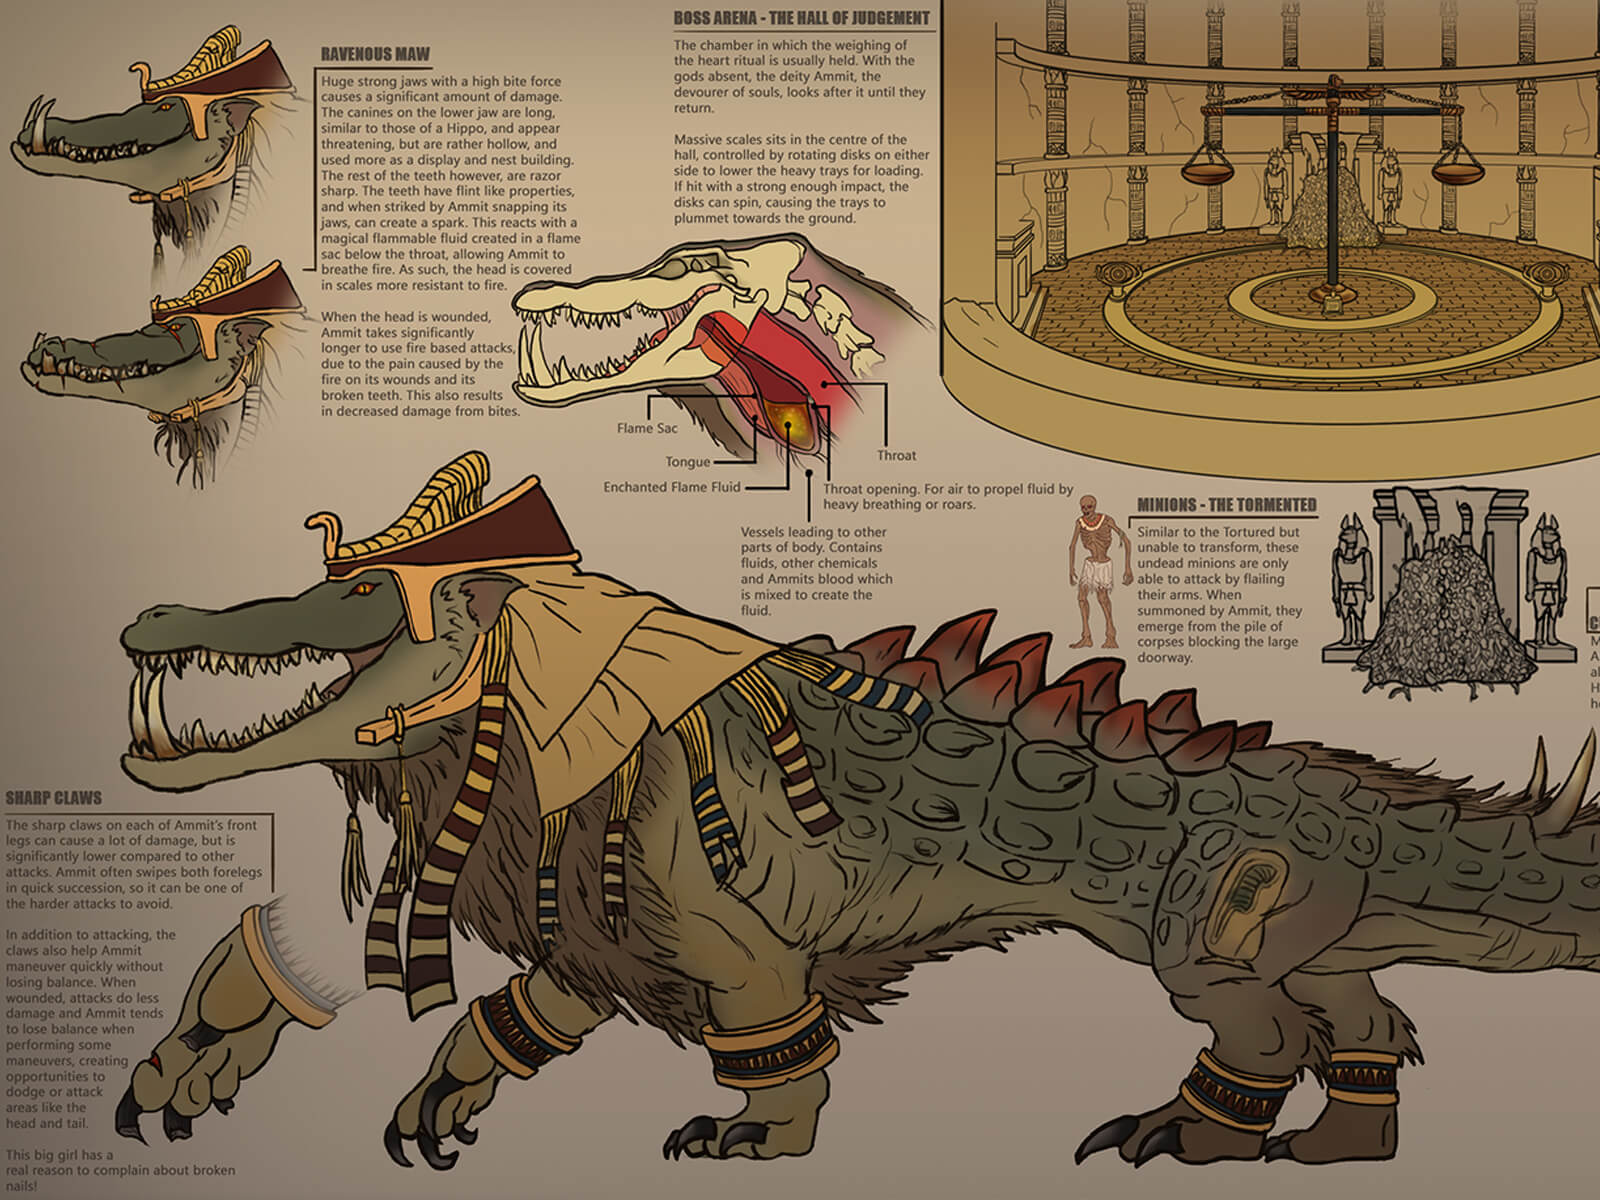 Details and sketches of a massive spiked, scaled, and furry alligator wearing ancient Egyptian-style headdress.